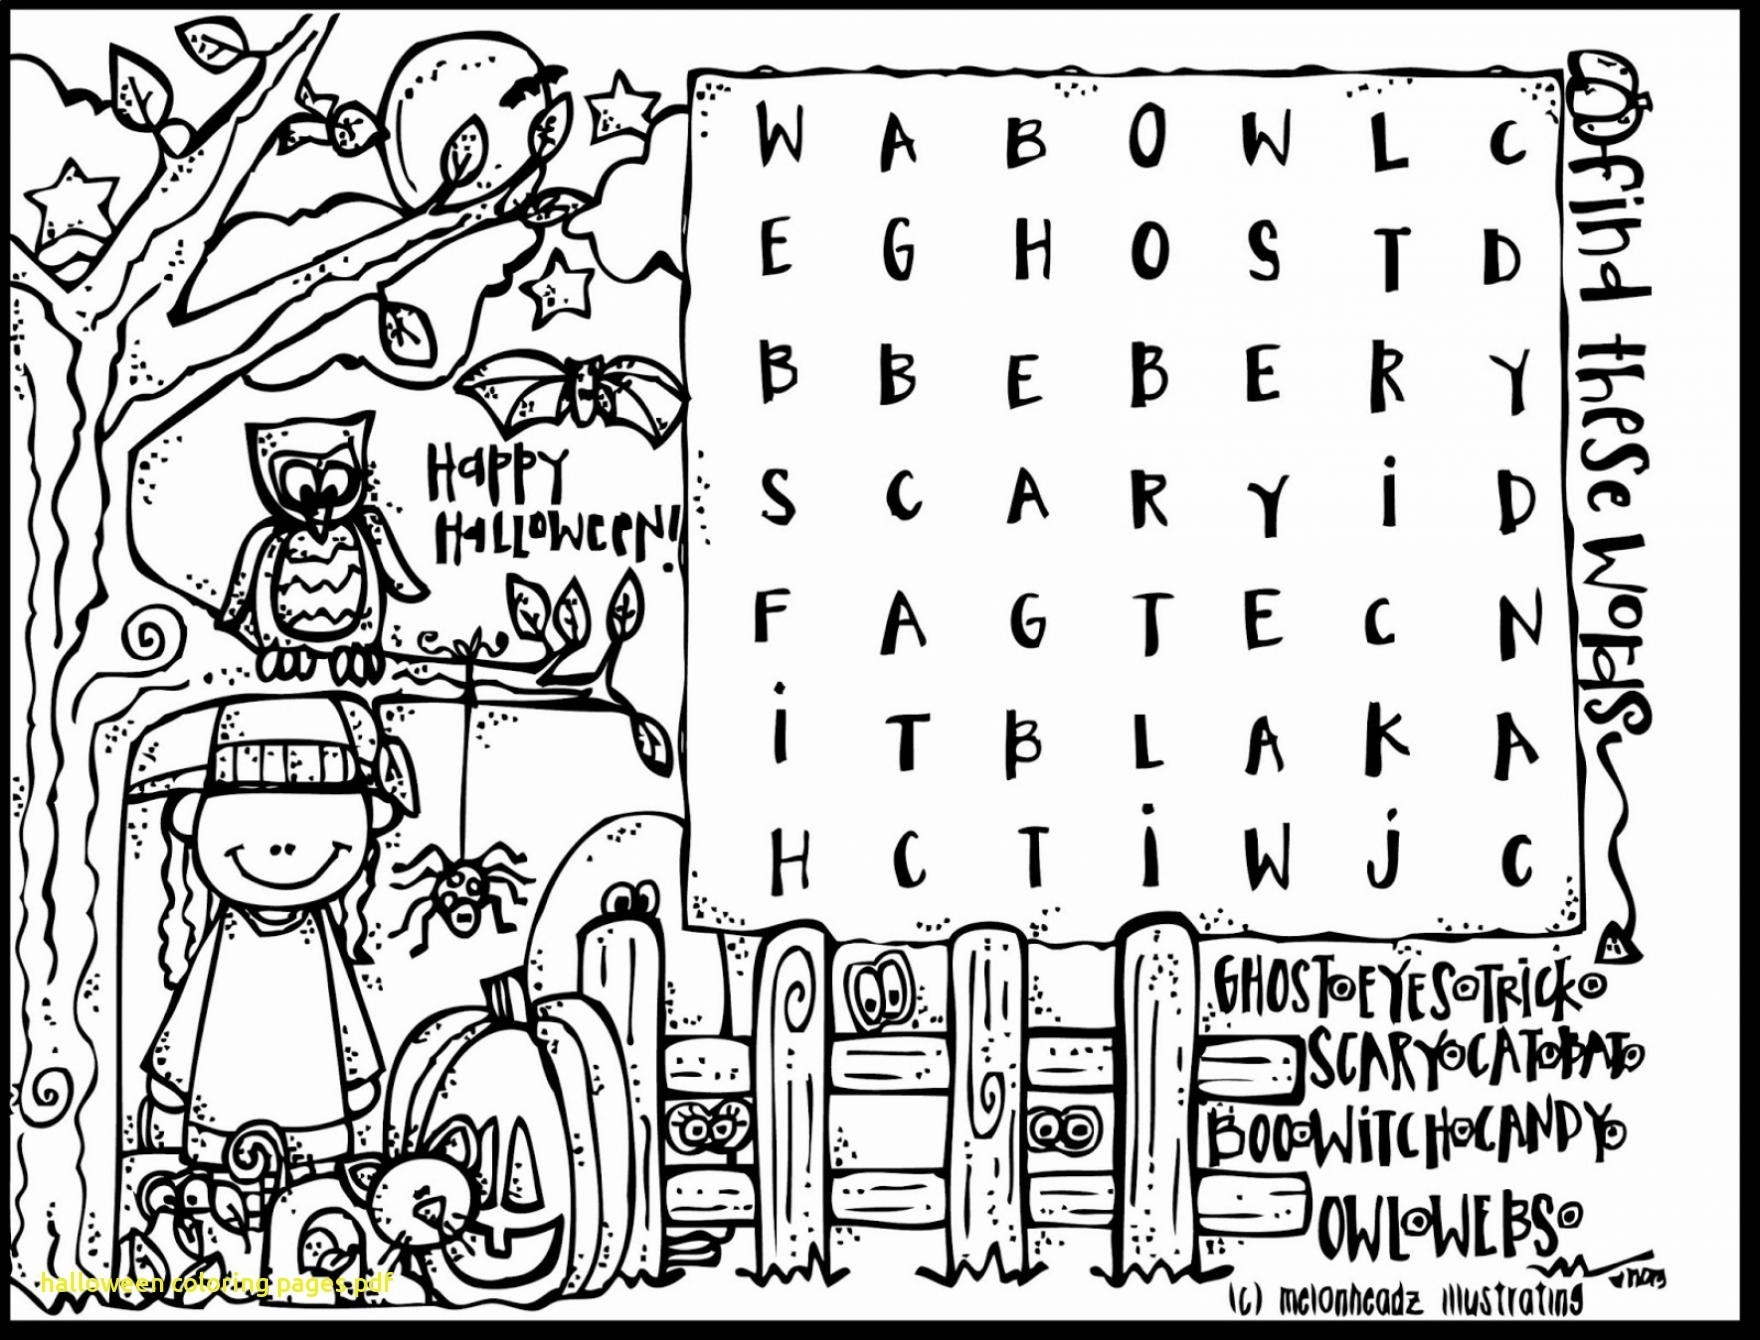 Coloring Pages : Halloweeng Pages Free Cute Printable Crazy Little - Free Printable Halloween Coloring Pages